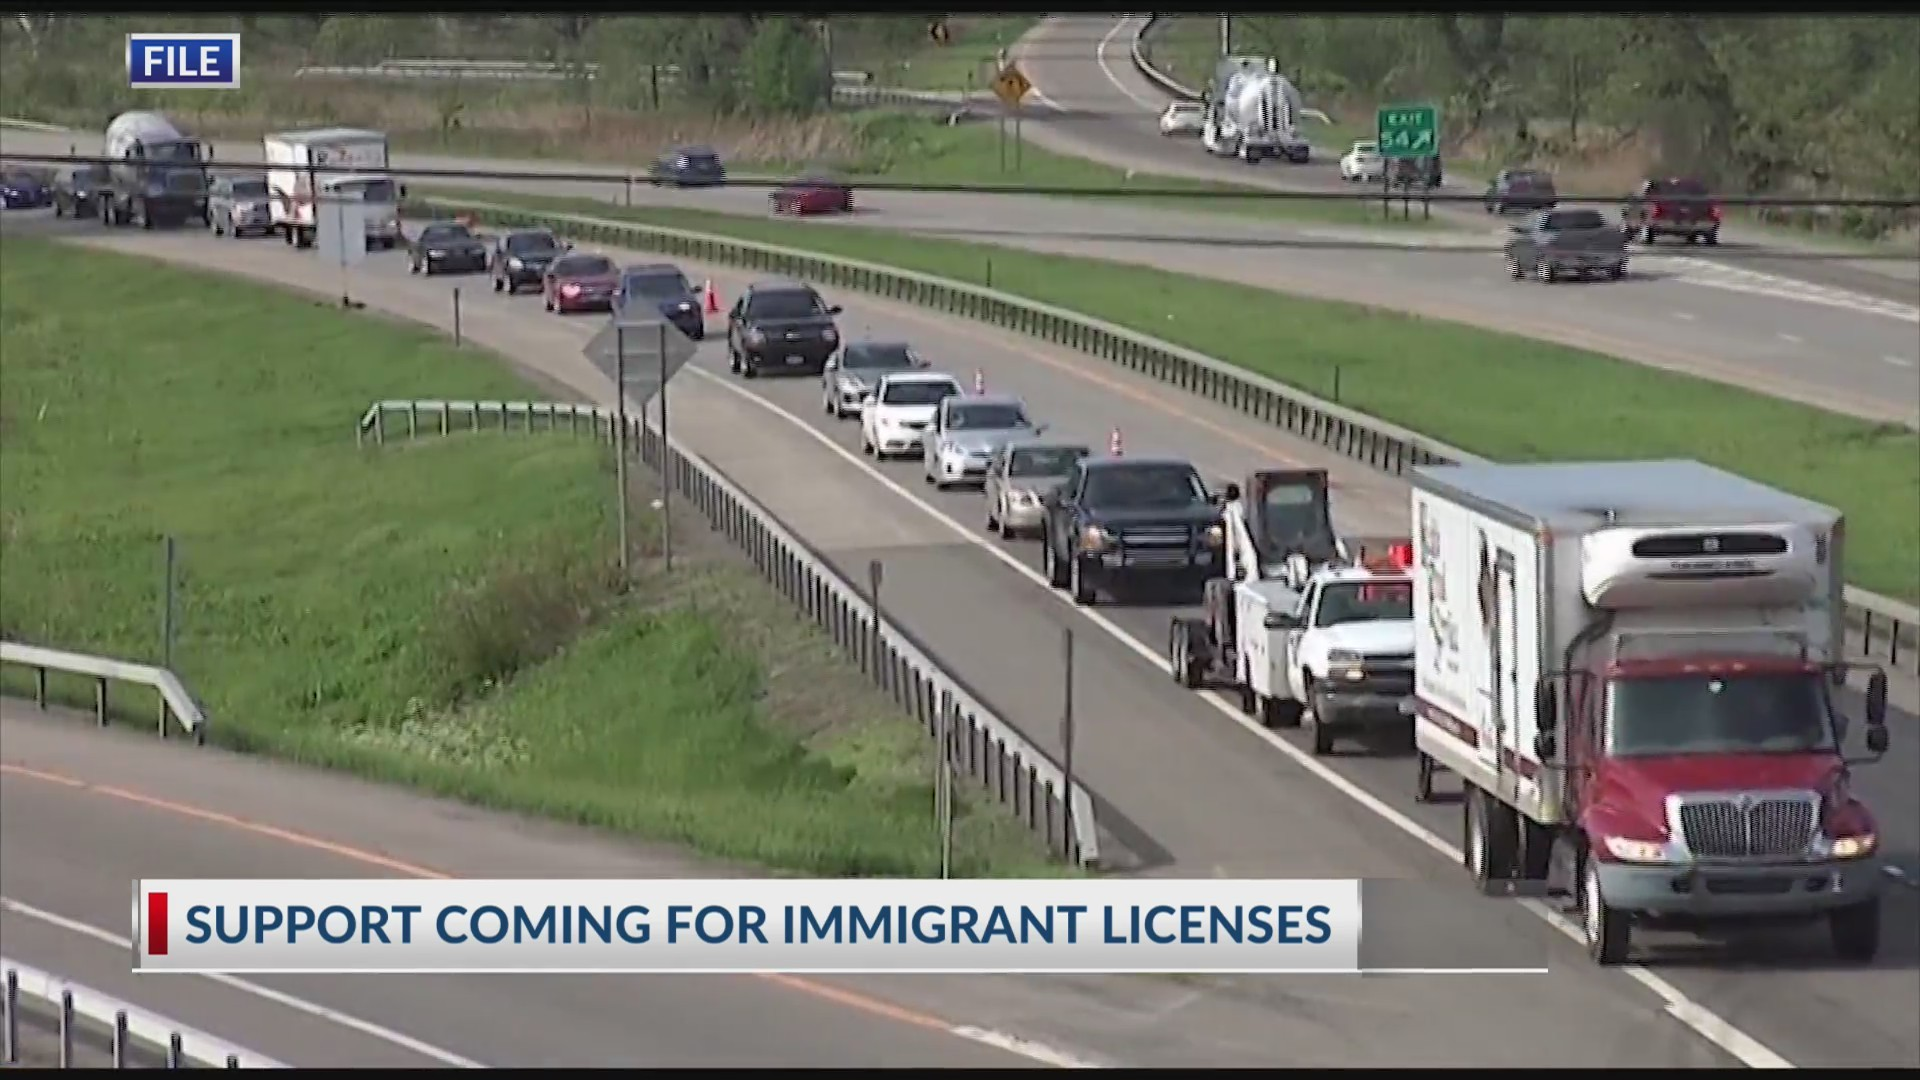 Immigrant Licenses